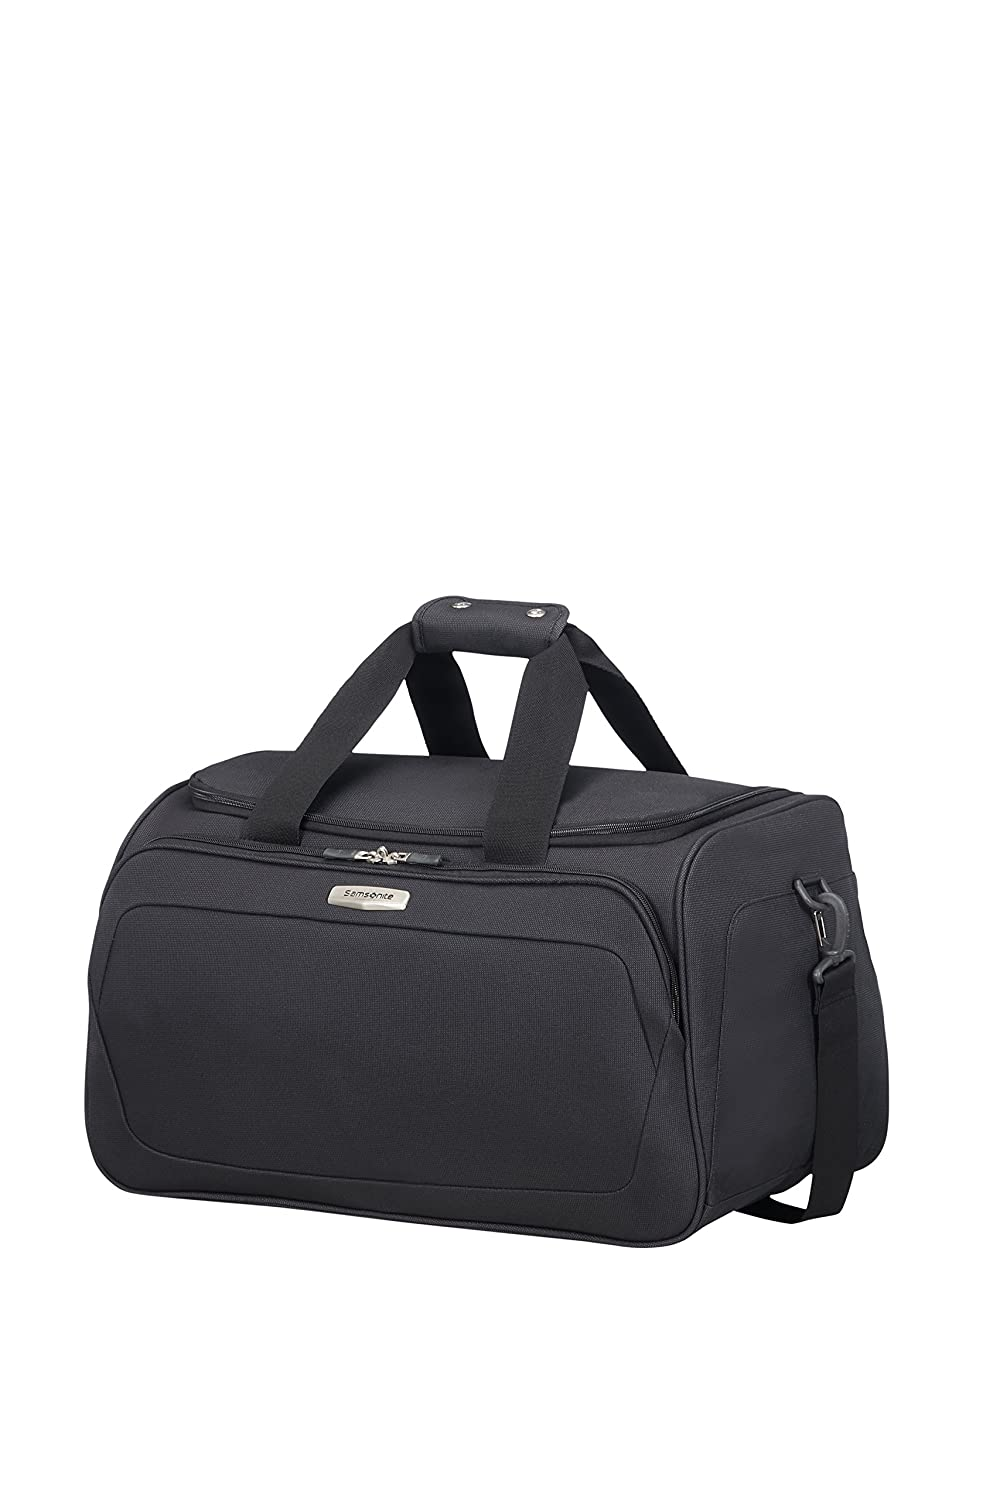 SAMSONITE Spark SNG - 53/21 Bolsa de Viaje, 53 cm, 54 Liters, Negro (Black): Amazon.es: Equipaje